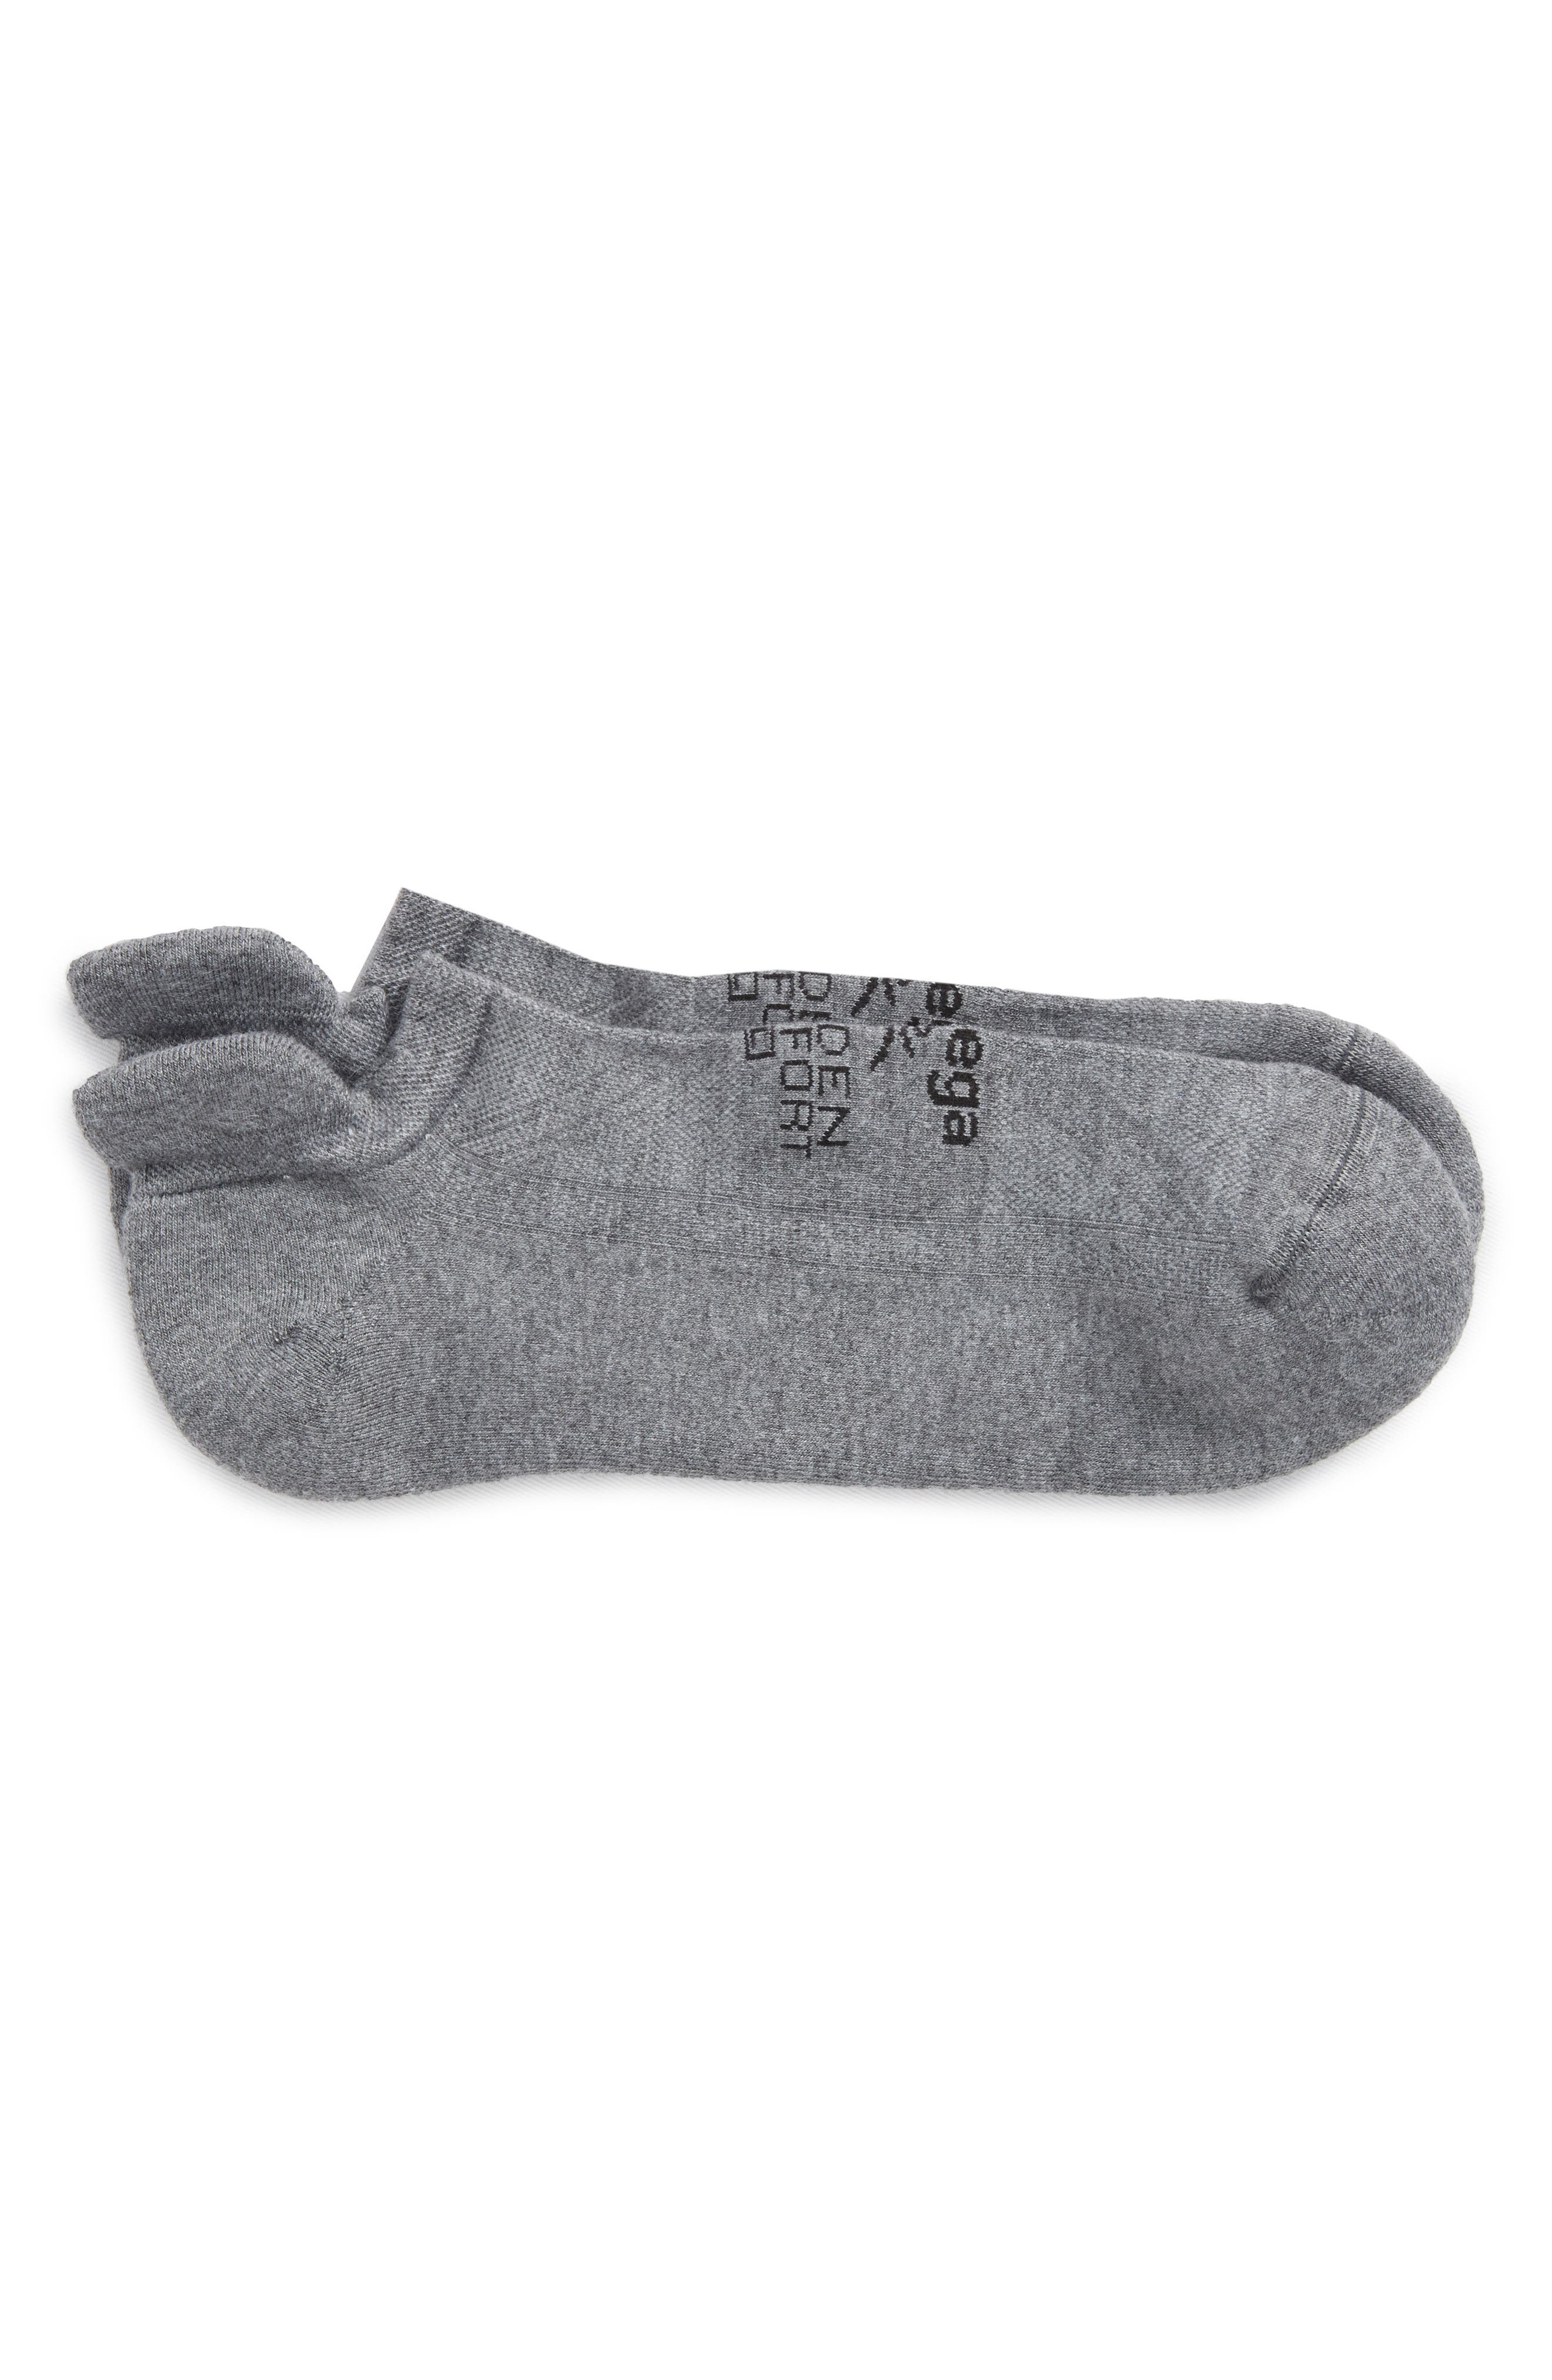 Hidden Comfort Socks,                         Main,                         color, CHARCOAL